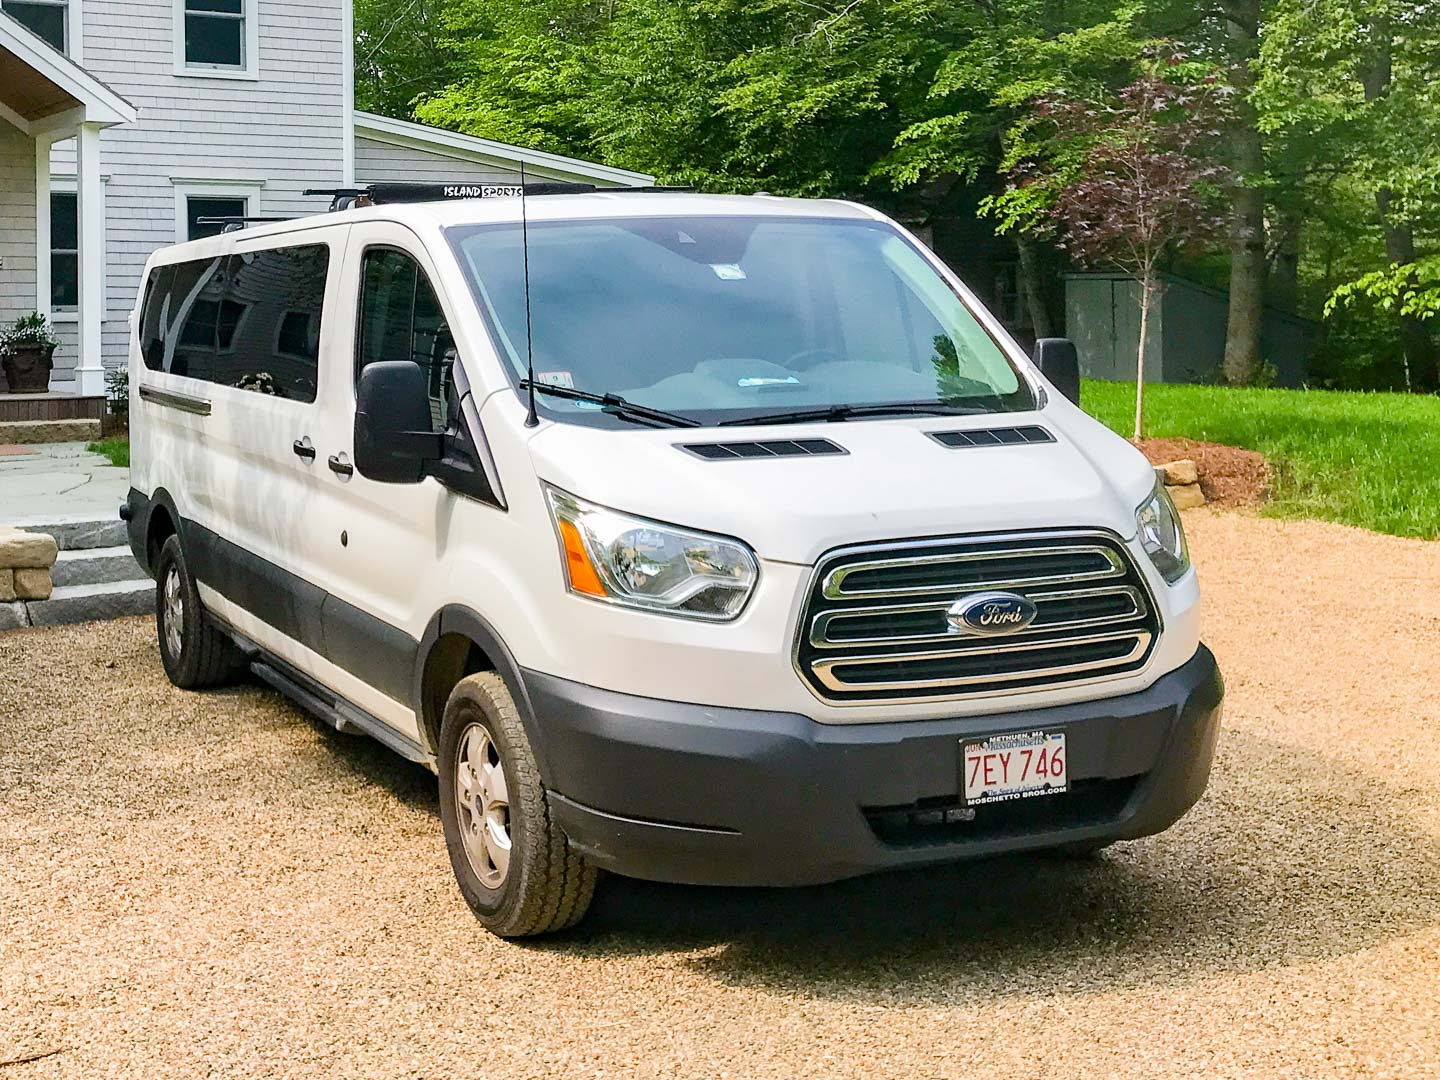 With 2017 Ford Van in front of it - available for rent